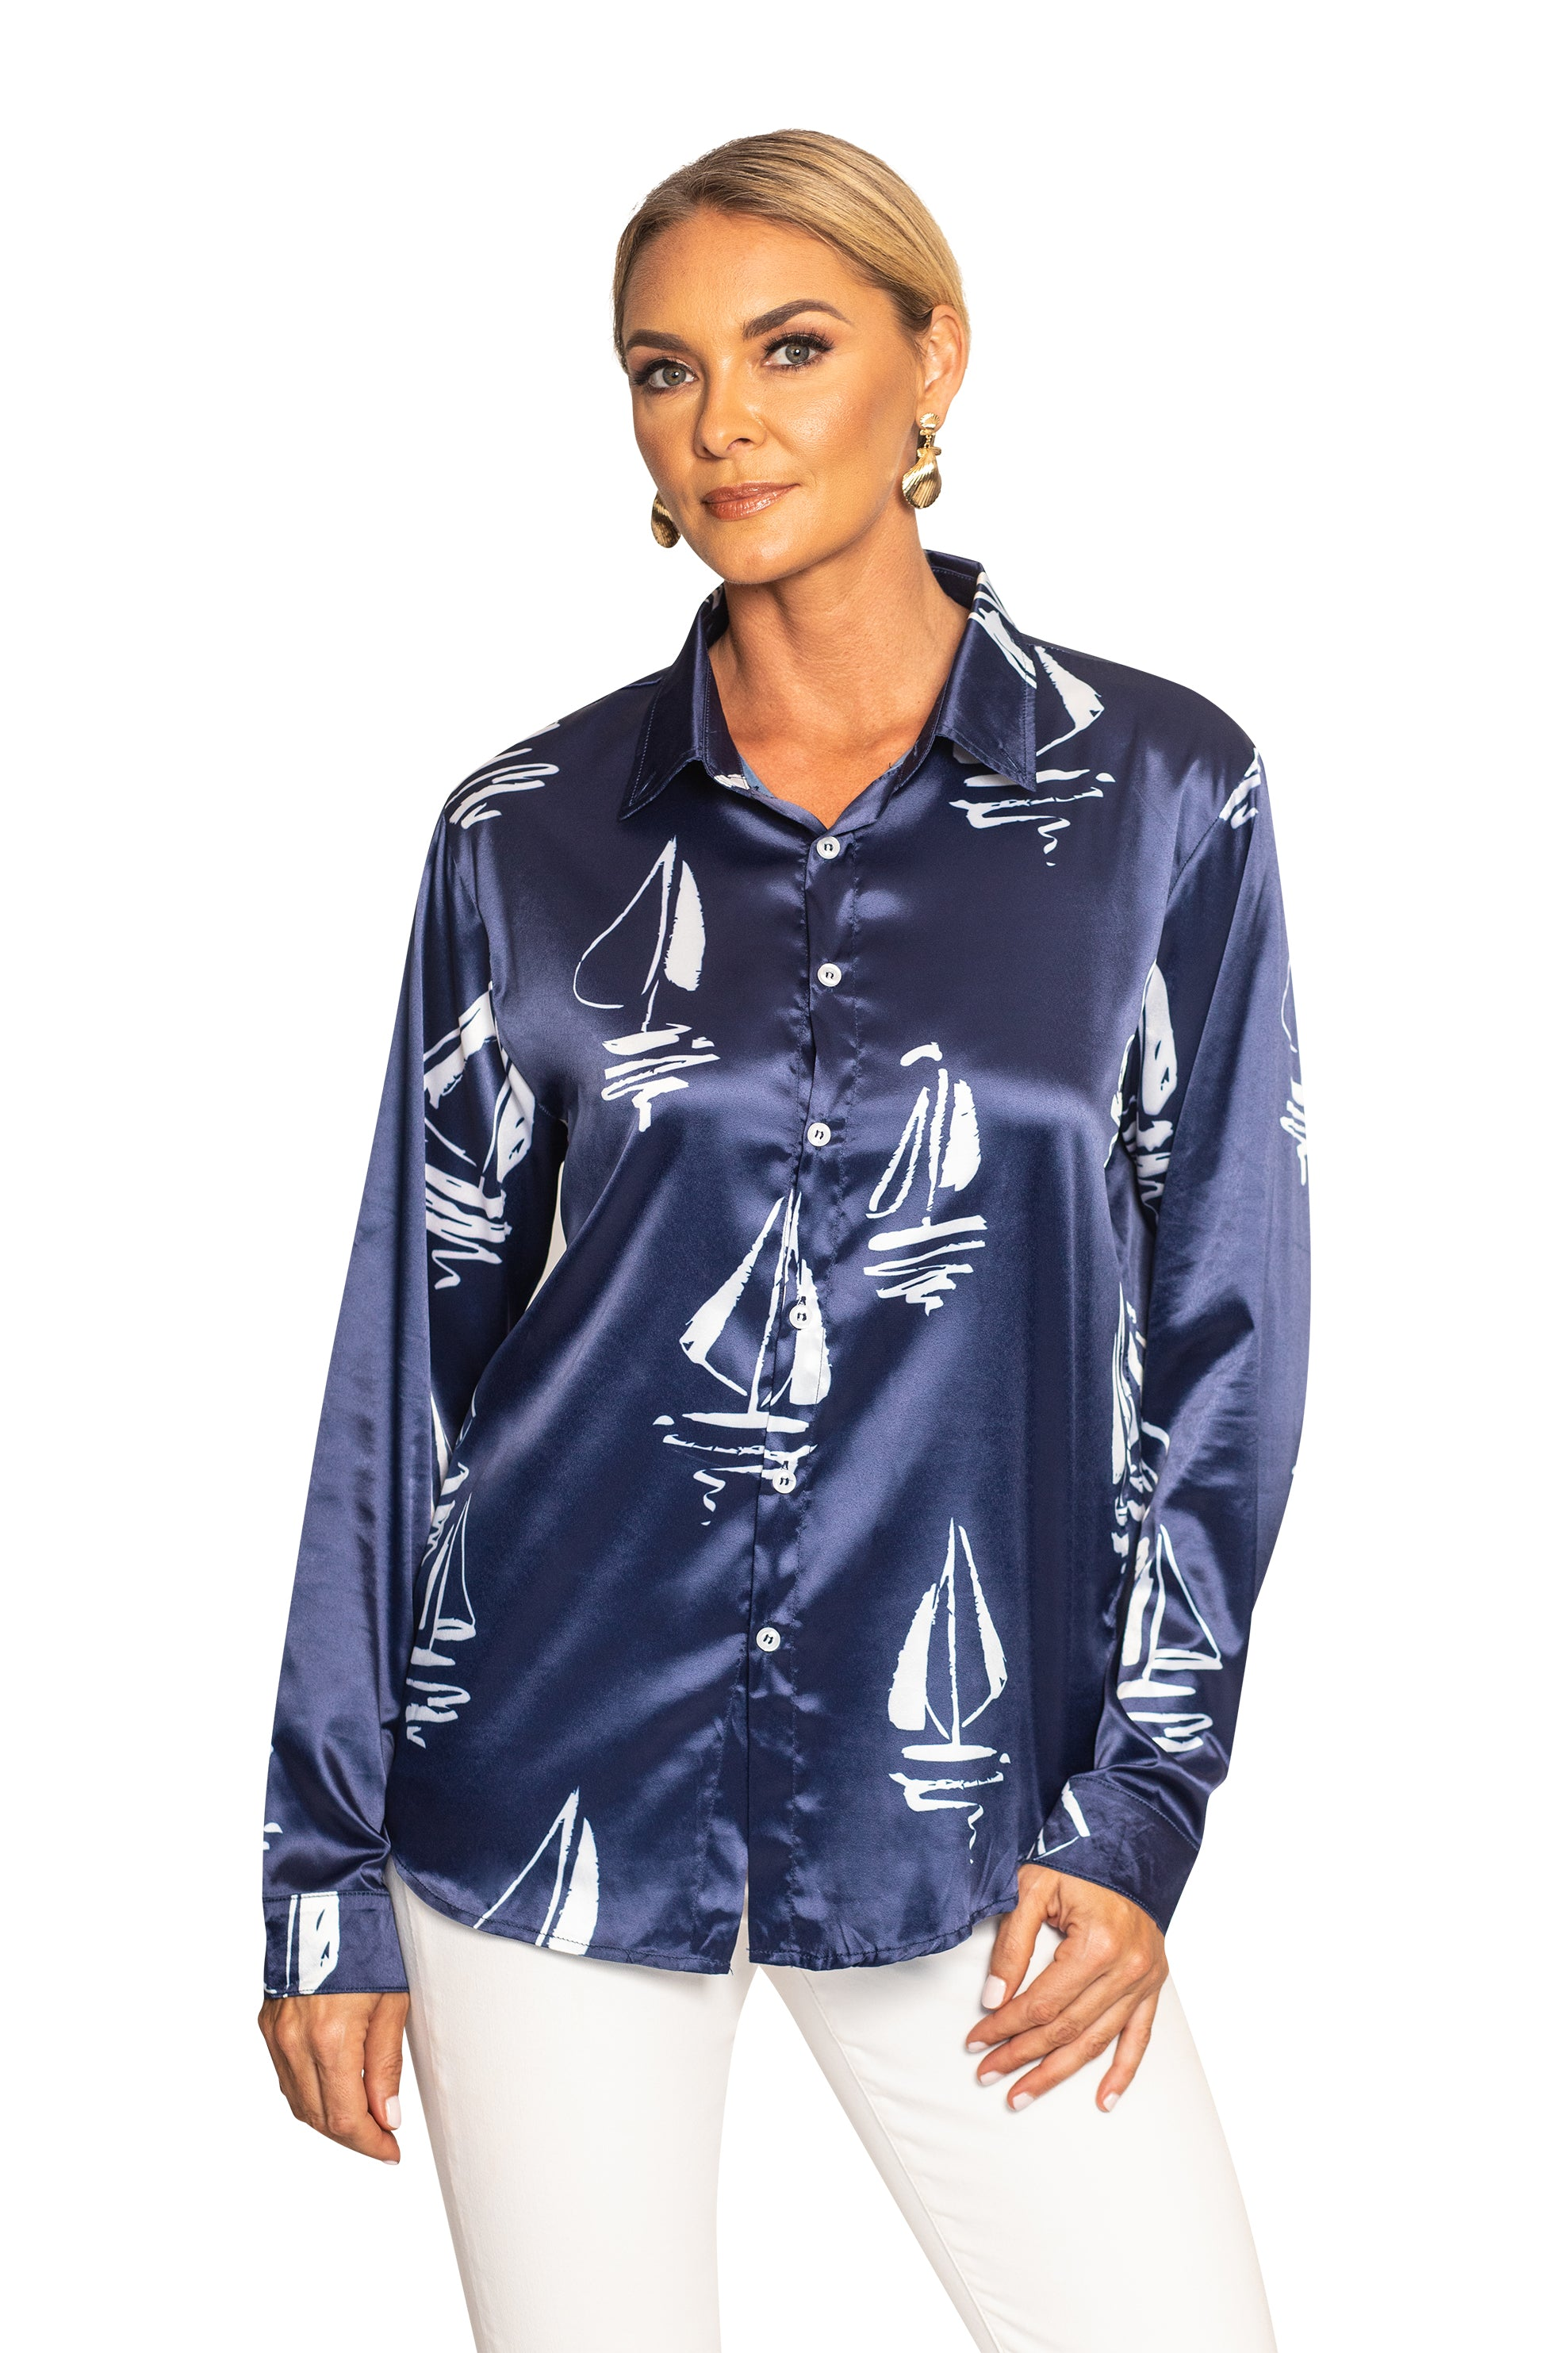 THE REGATTA SATIN BUTTON UP